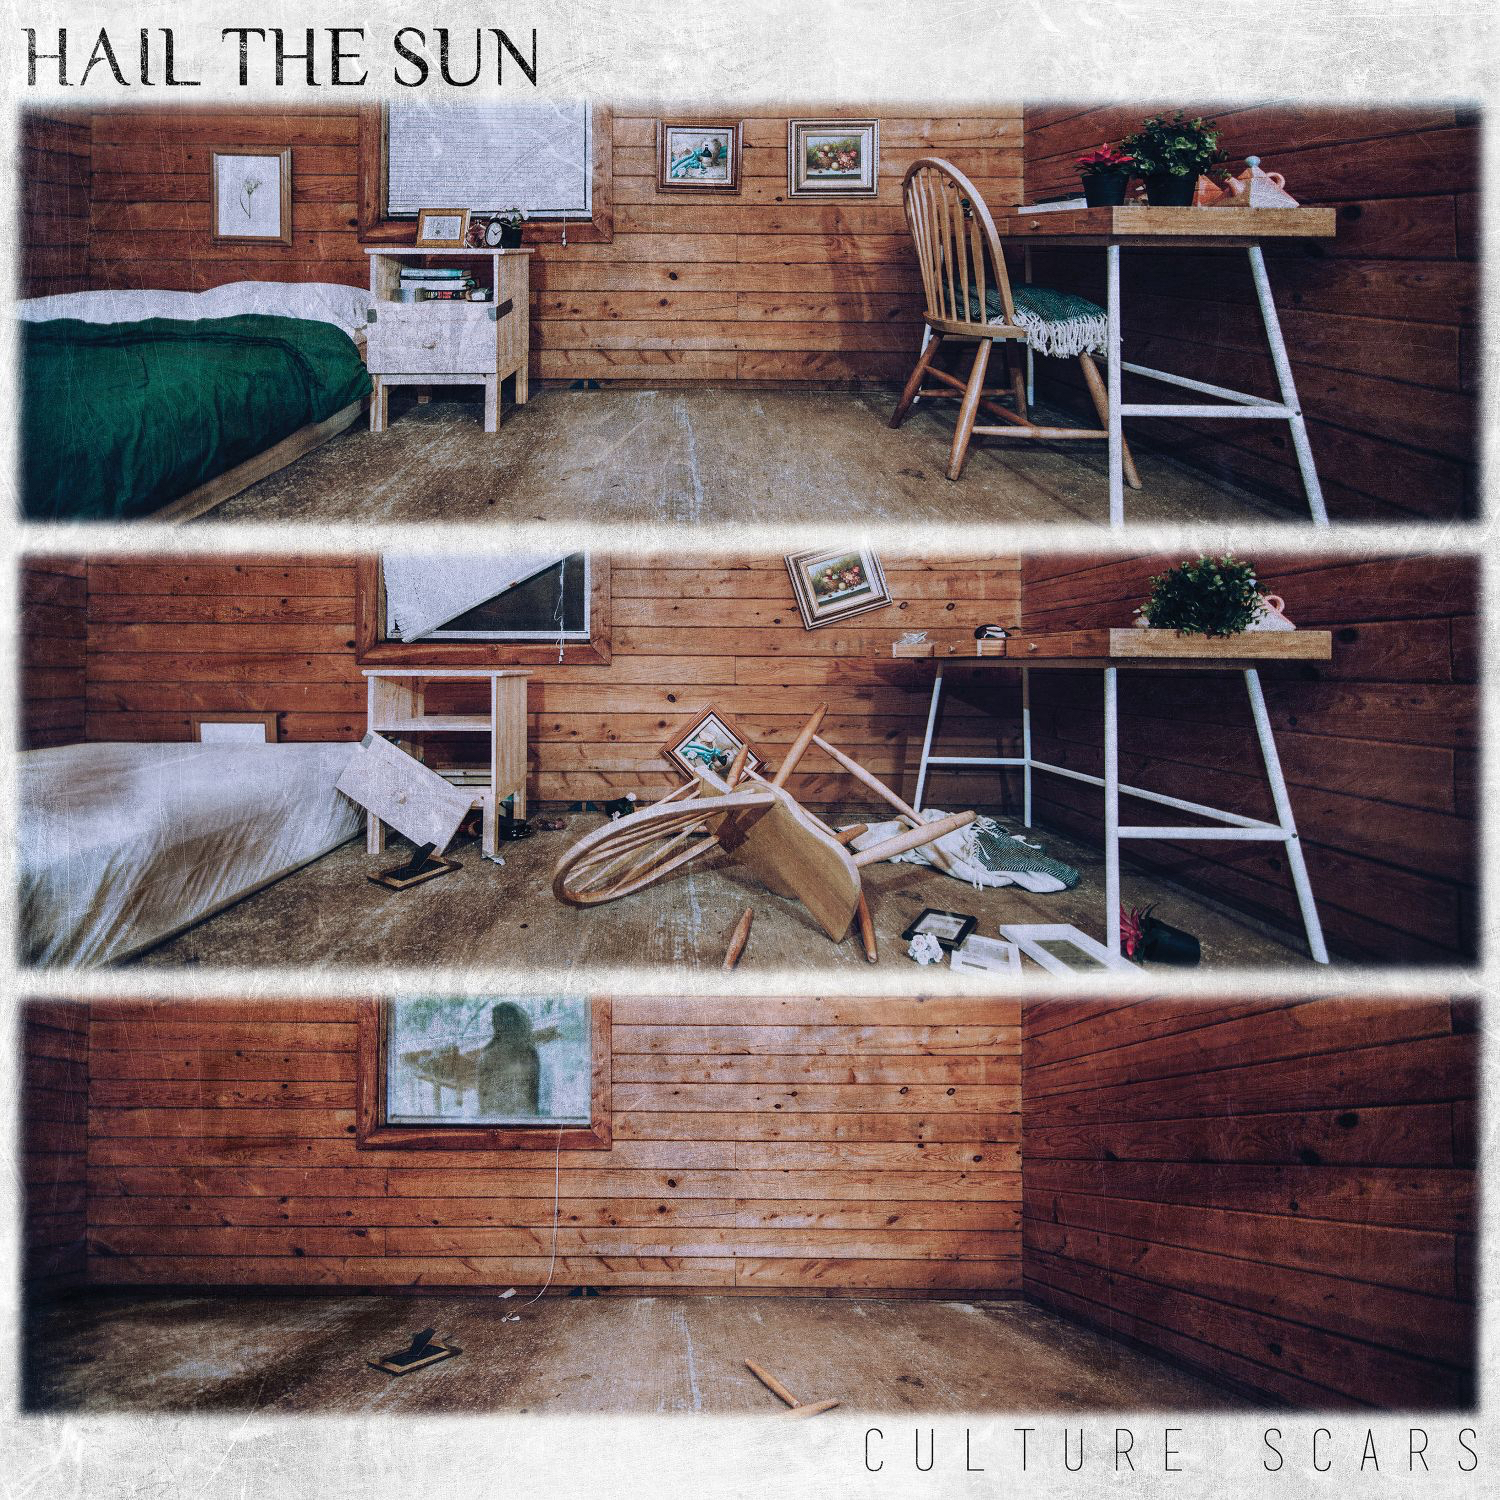 Hail the Sun - Burn Nice and Slow (The Formative Years) [single] (2016)